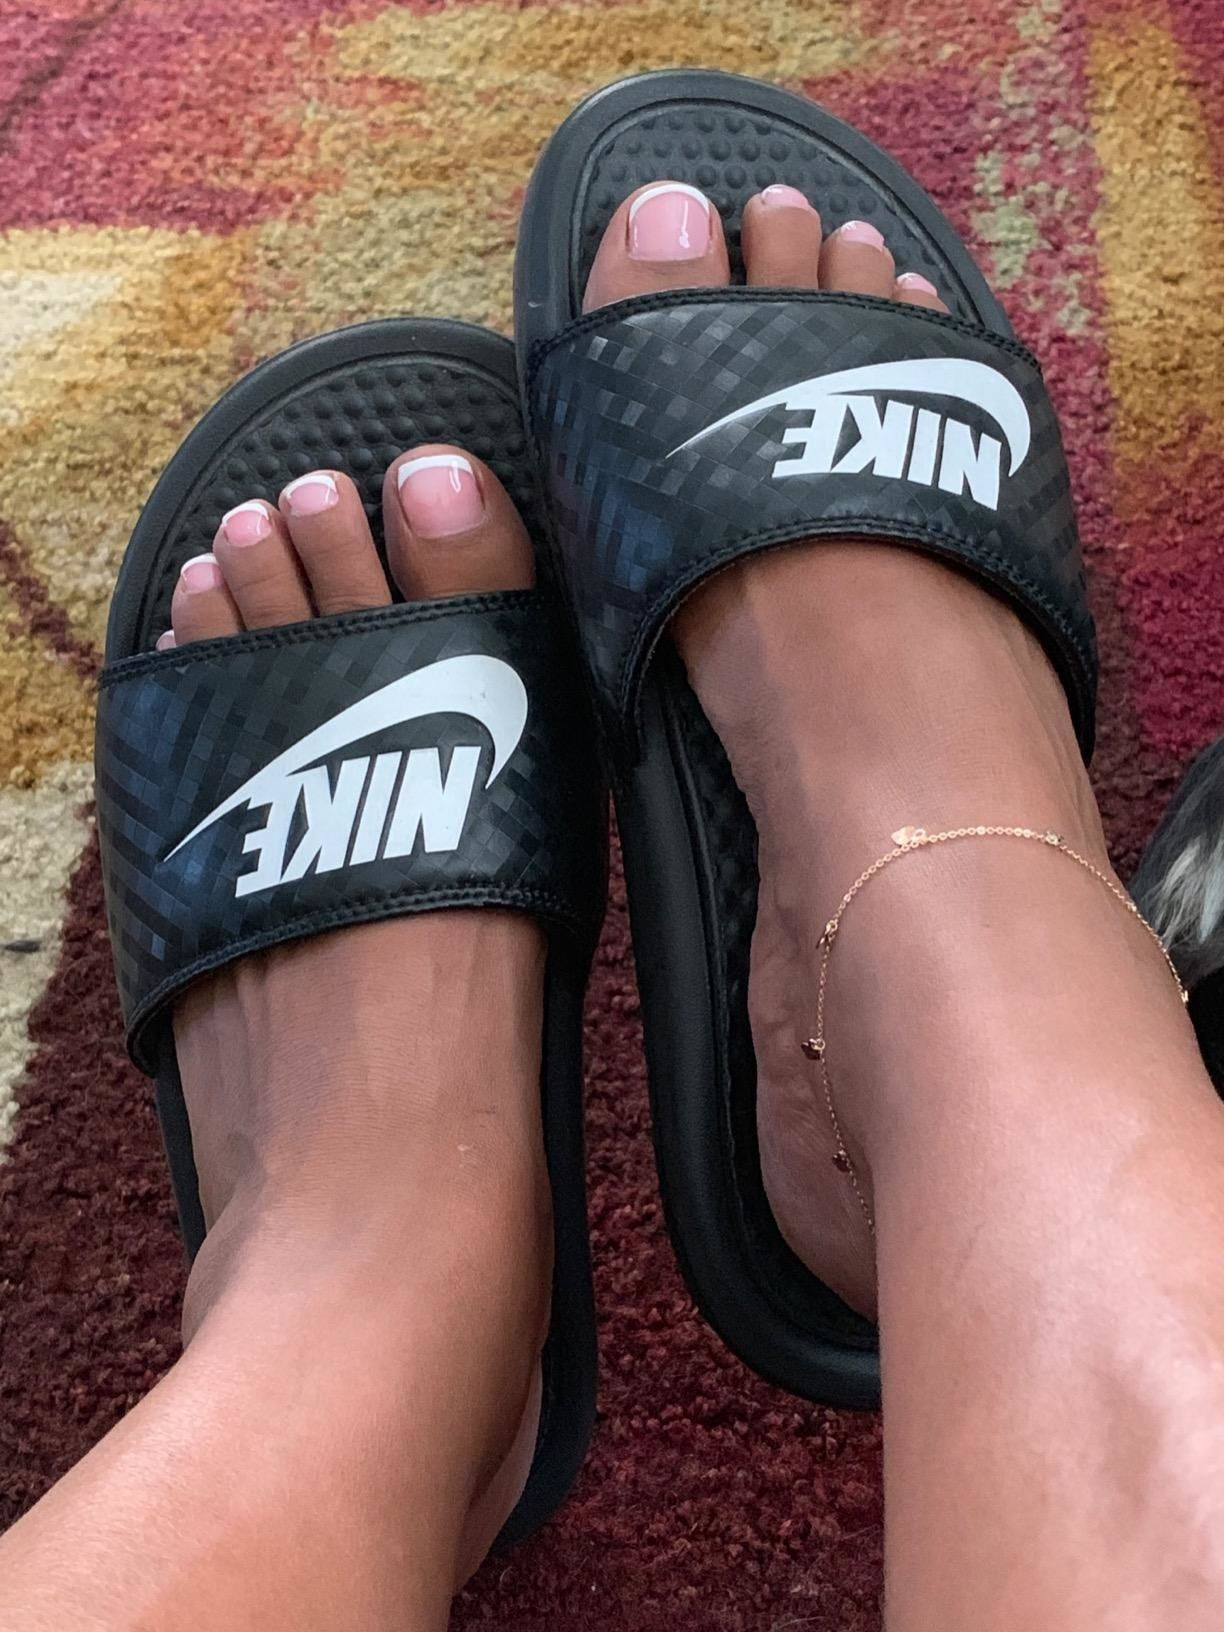 Reviewer wearing the sandals in black